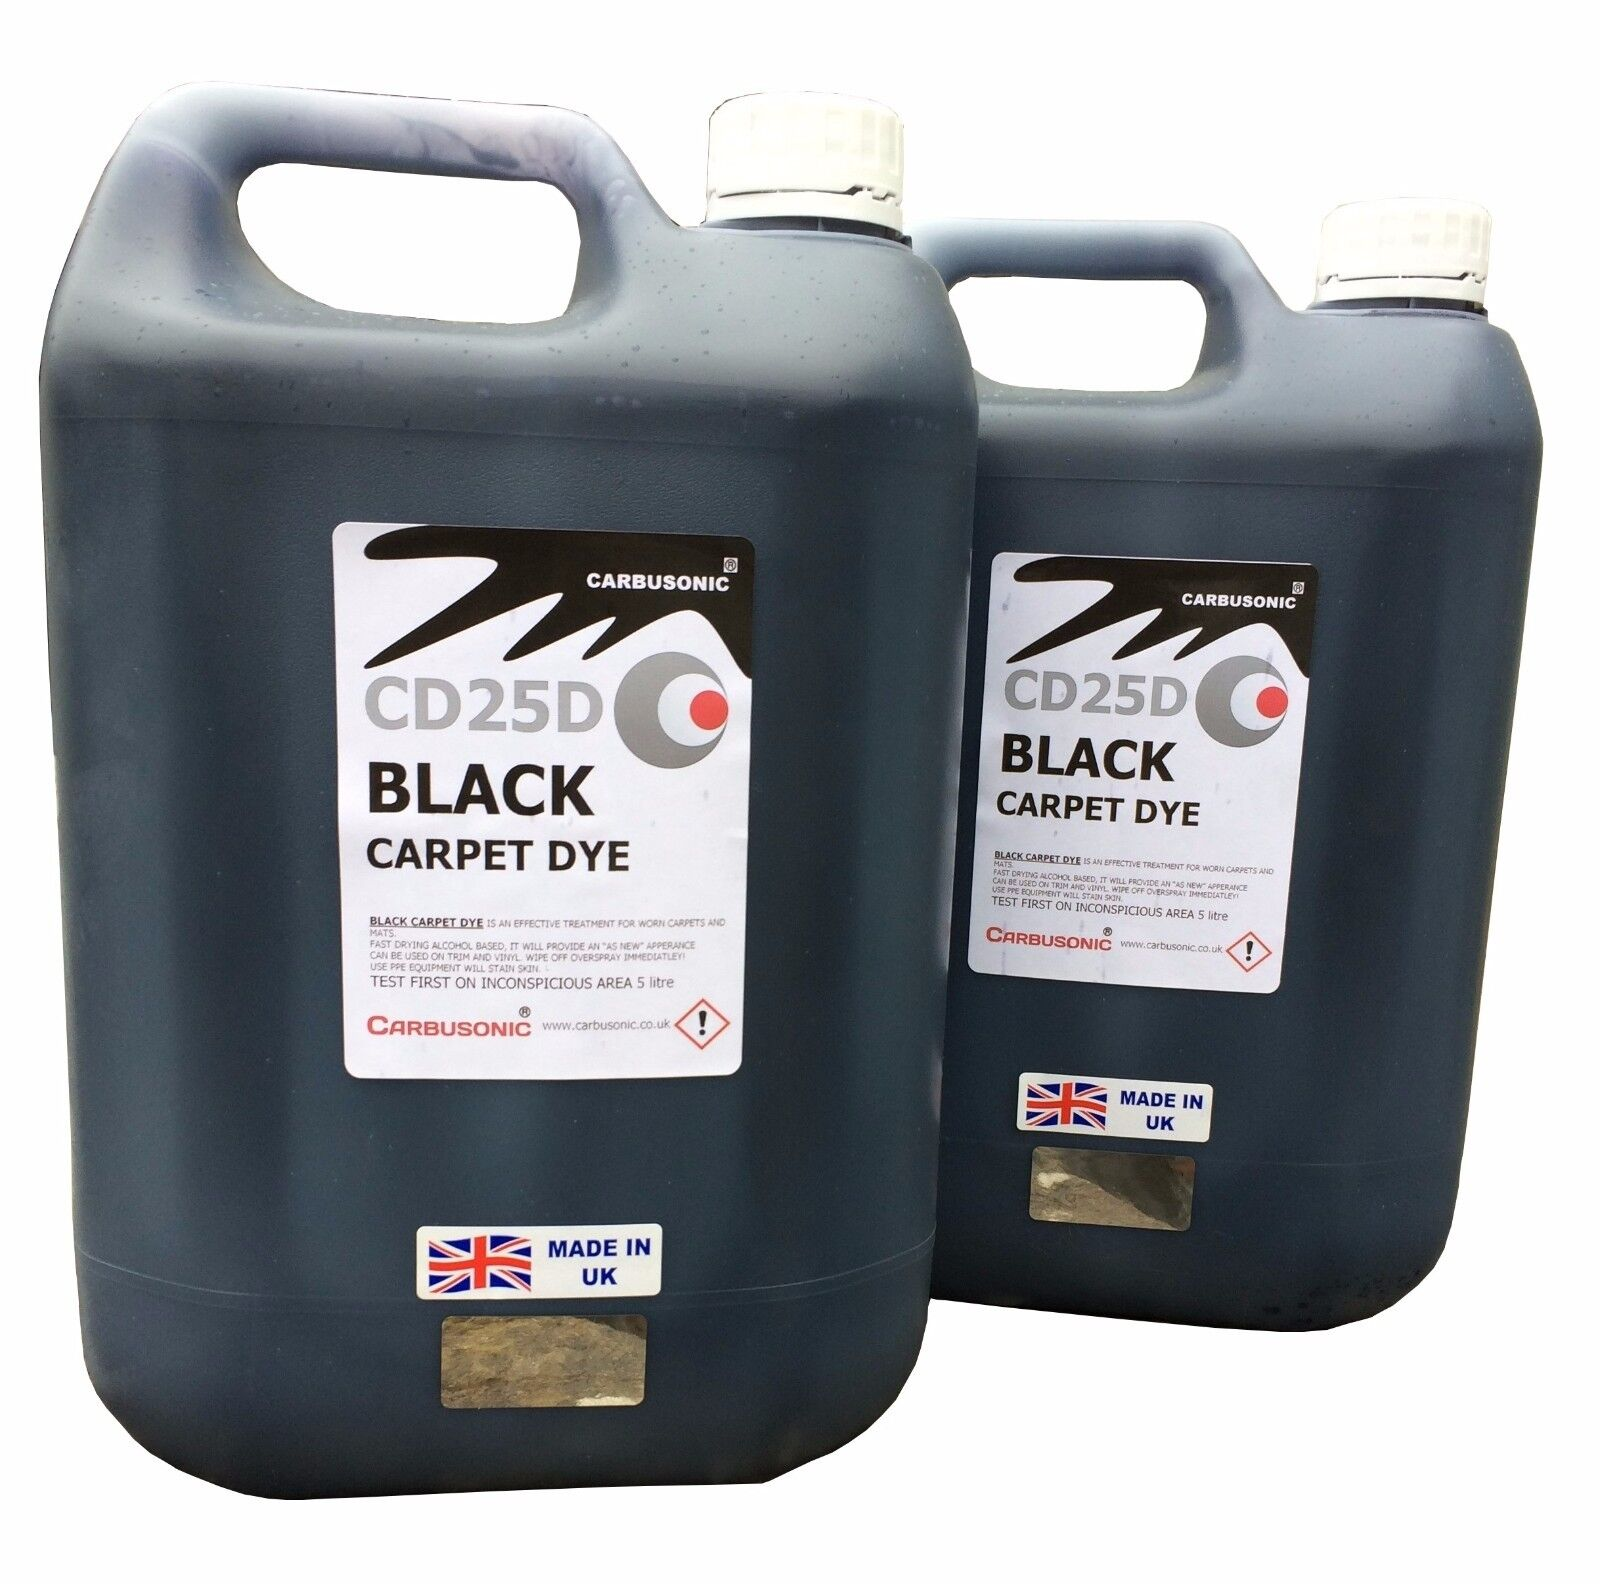 Black carpet dye - interior renovation , car trim 10 Litre free delivery.